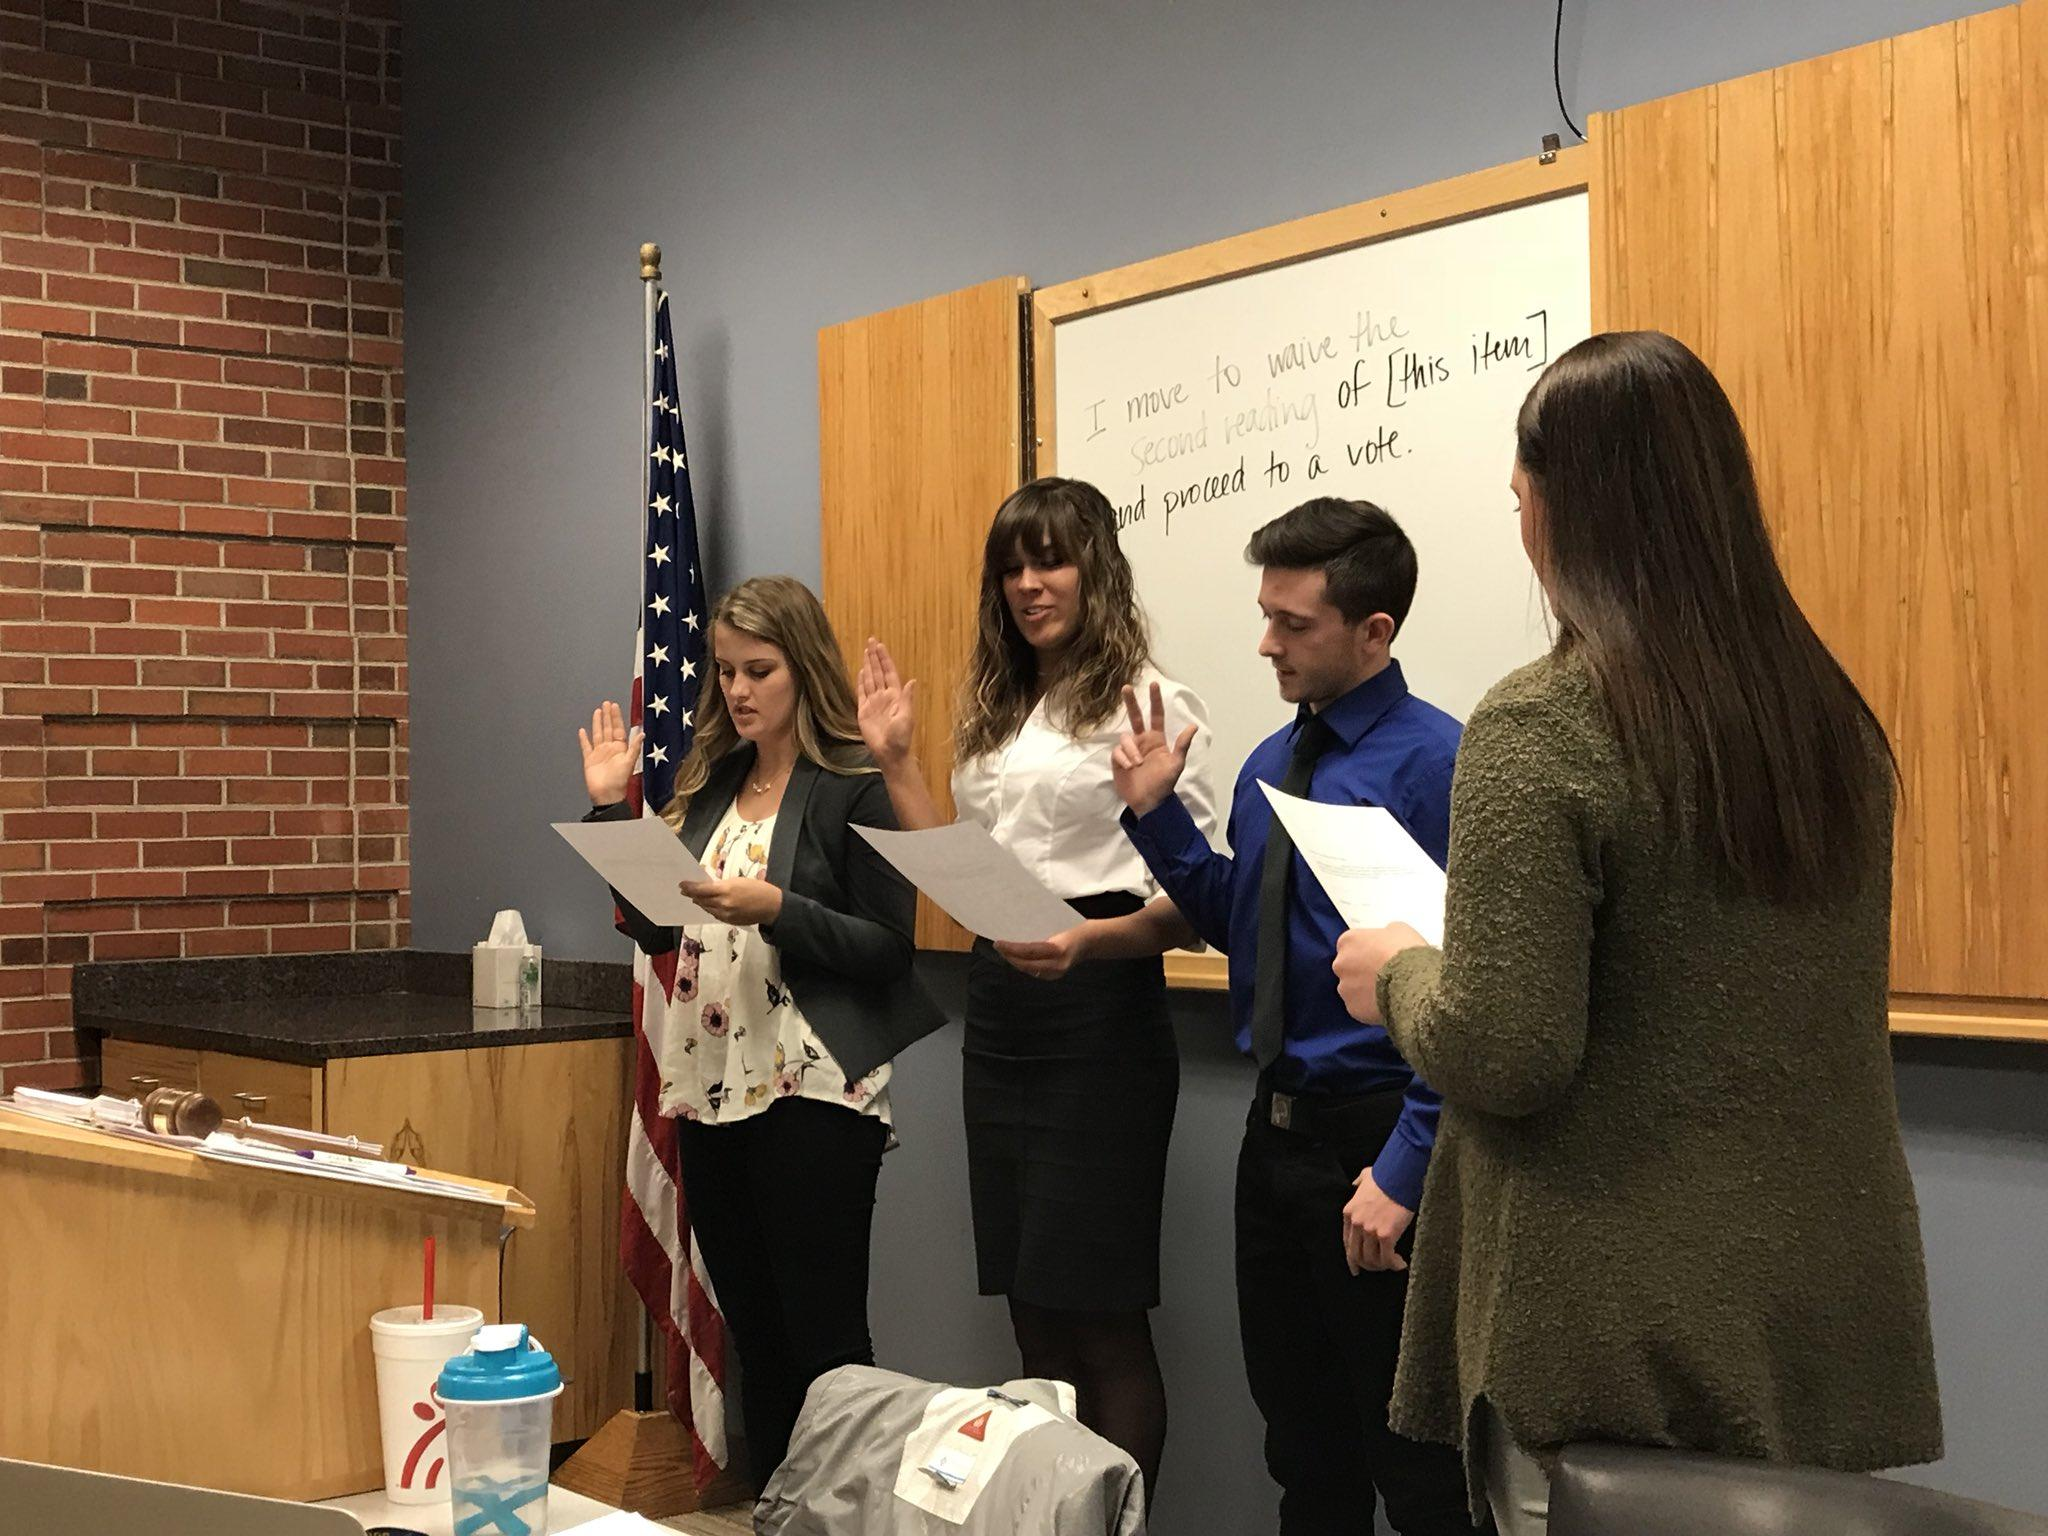 EMILY DE WAARD (Left to right) Allison Pauley, Baylee Dittman and Ryan Sailors swearing in as At-Large senators at the Jan. 29 Students' Association meeting.